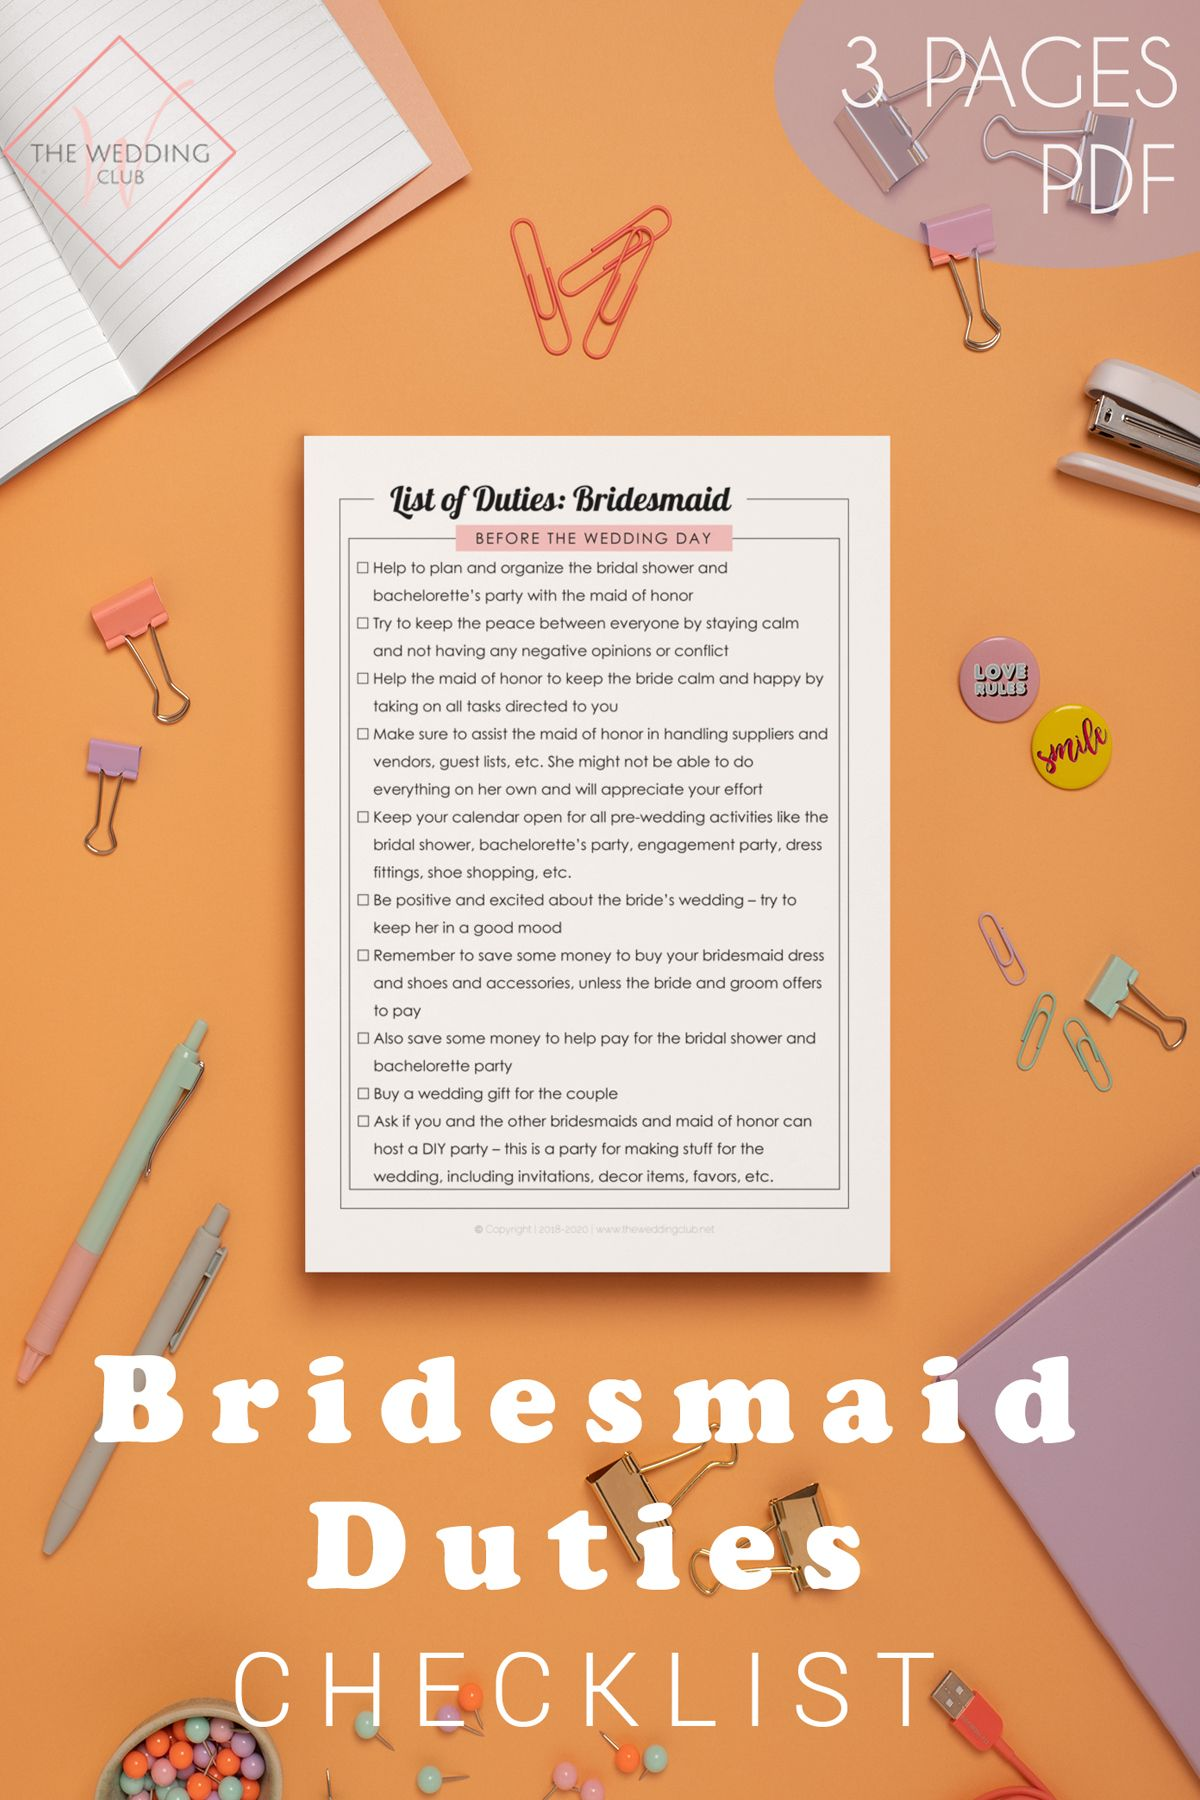 Bridesmaid Duties With Colorful Headings Checklist